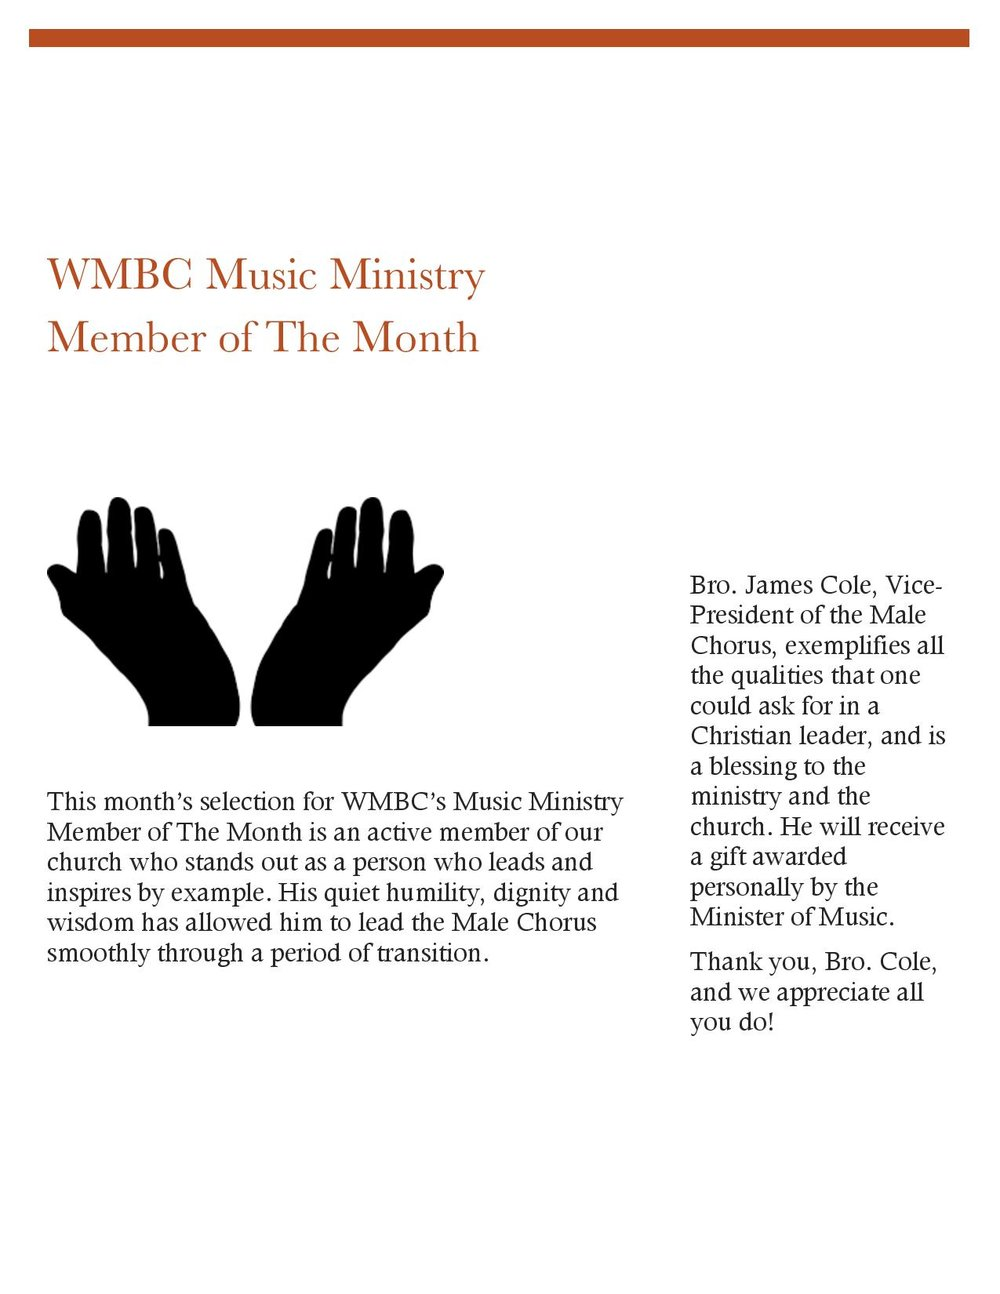 WMBC Music Ministry Newsletter November 2017  (Autosaved)-page-004.jpg